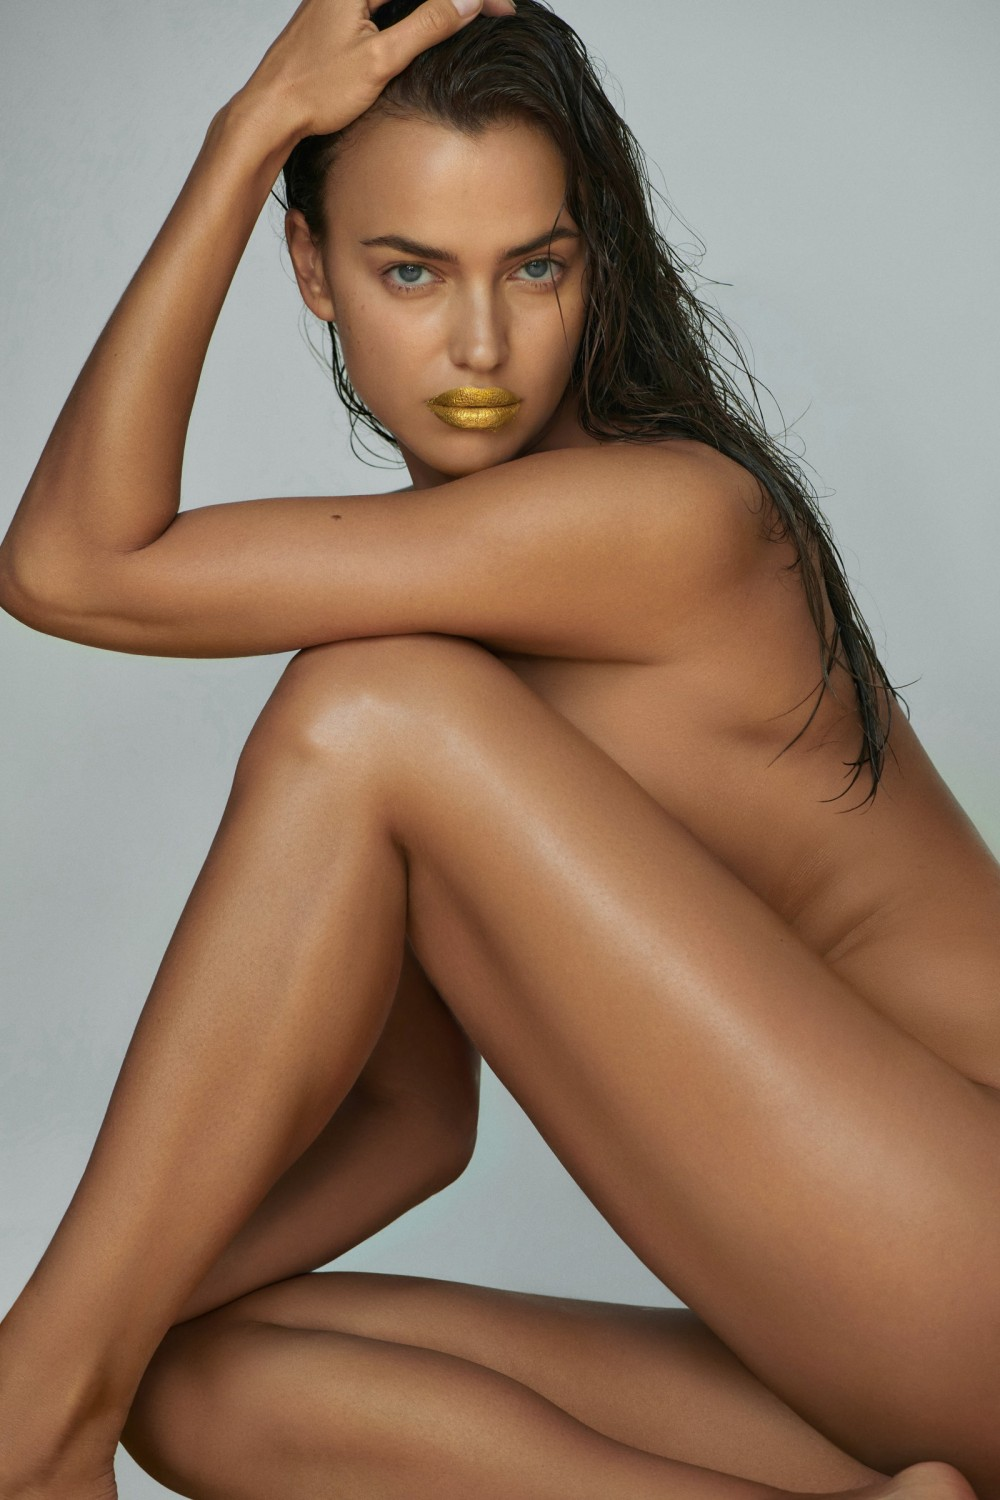 Irina Shayk of The Lions Talent nbspManagement wears a Mimi Luzon x Irina Shayk 24k Pure Gold Lip Treatment nbsp129...